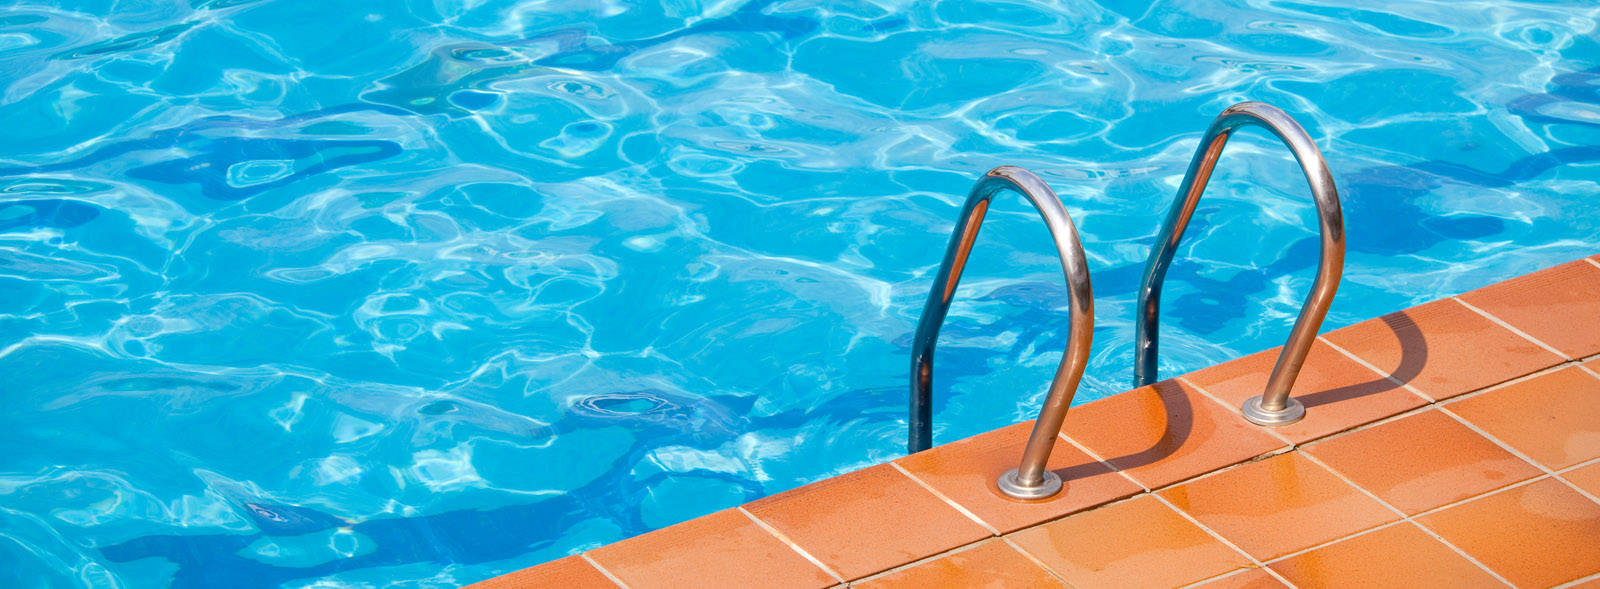 automatic suction swimming pool cleaners suppliers southern suburbs and atlantic seaboard cape town